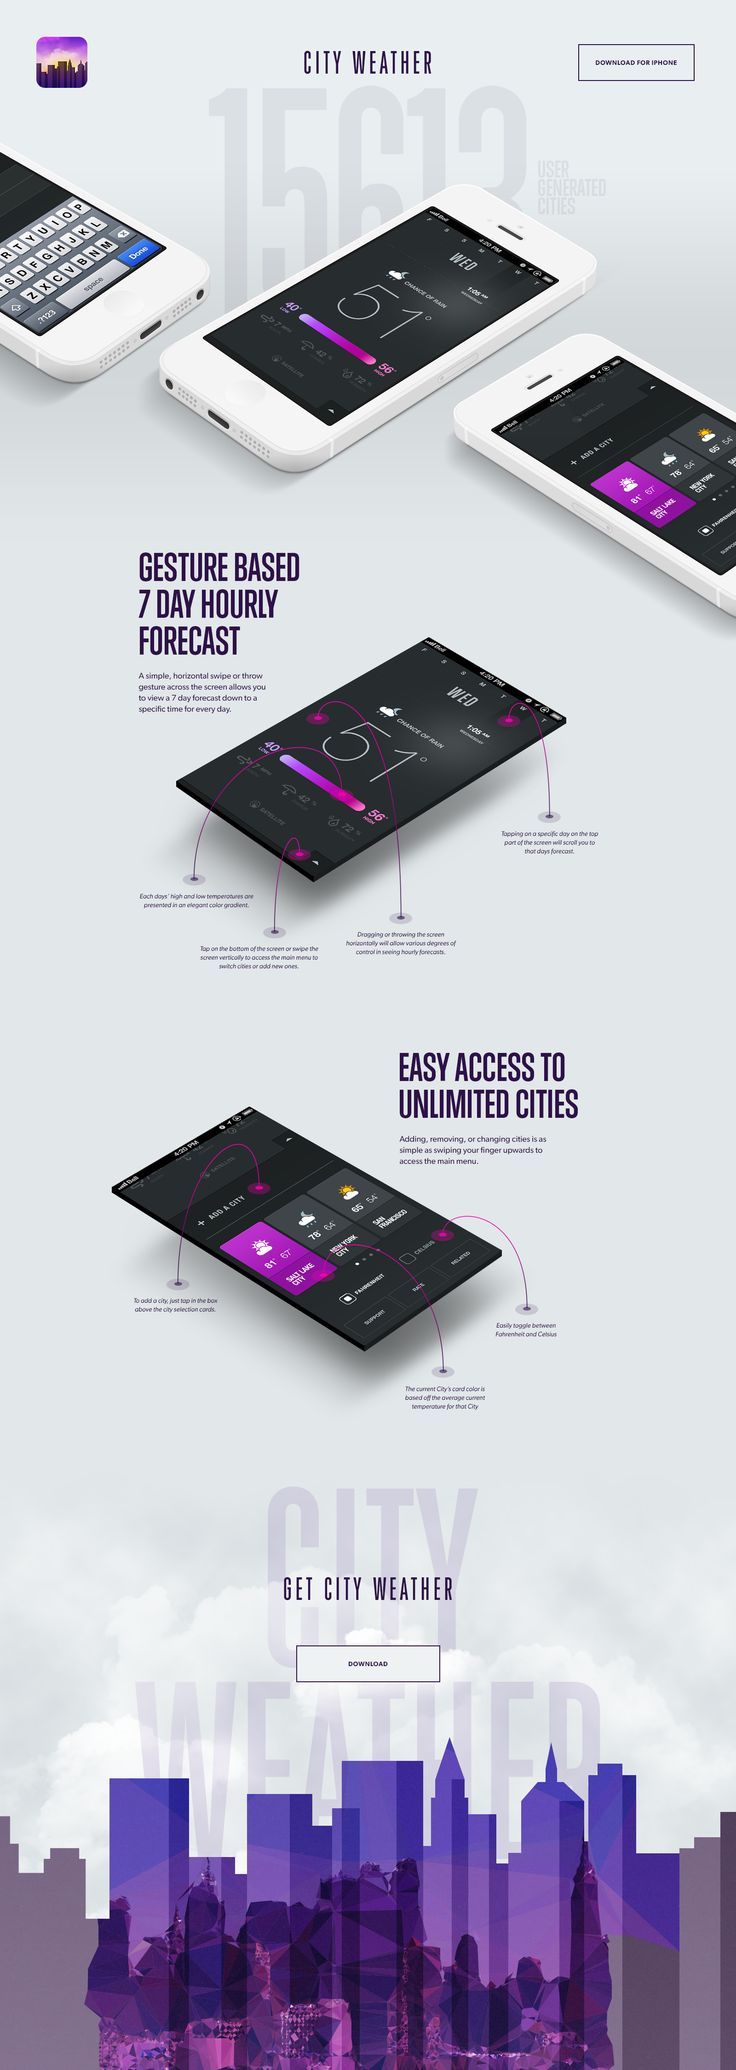 Dribbble - 00_comp.png by Rally Interactive (via Ben Cline) web design